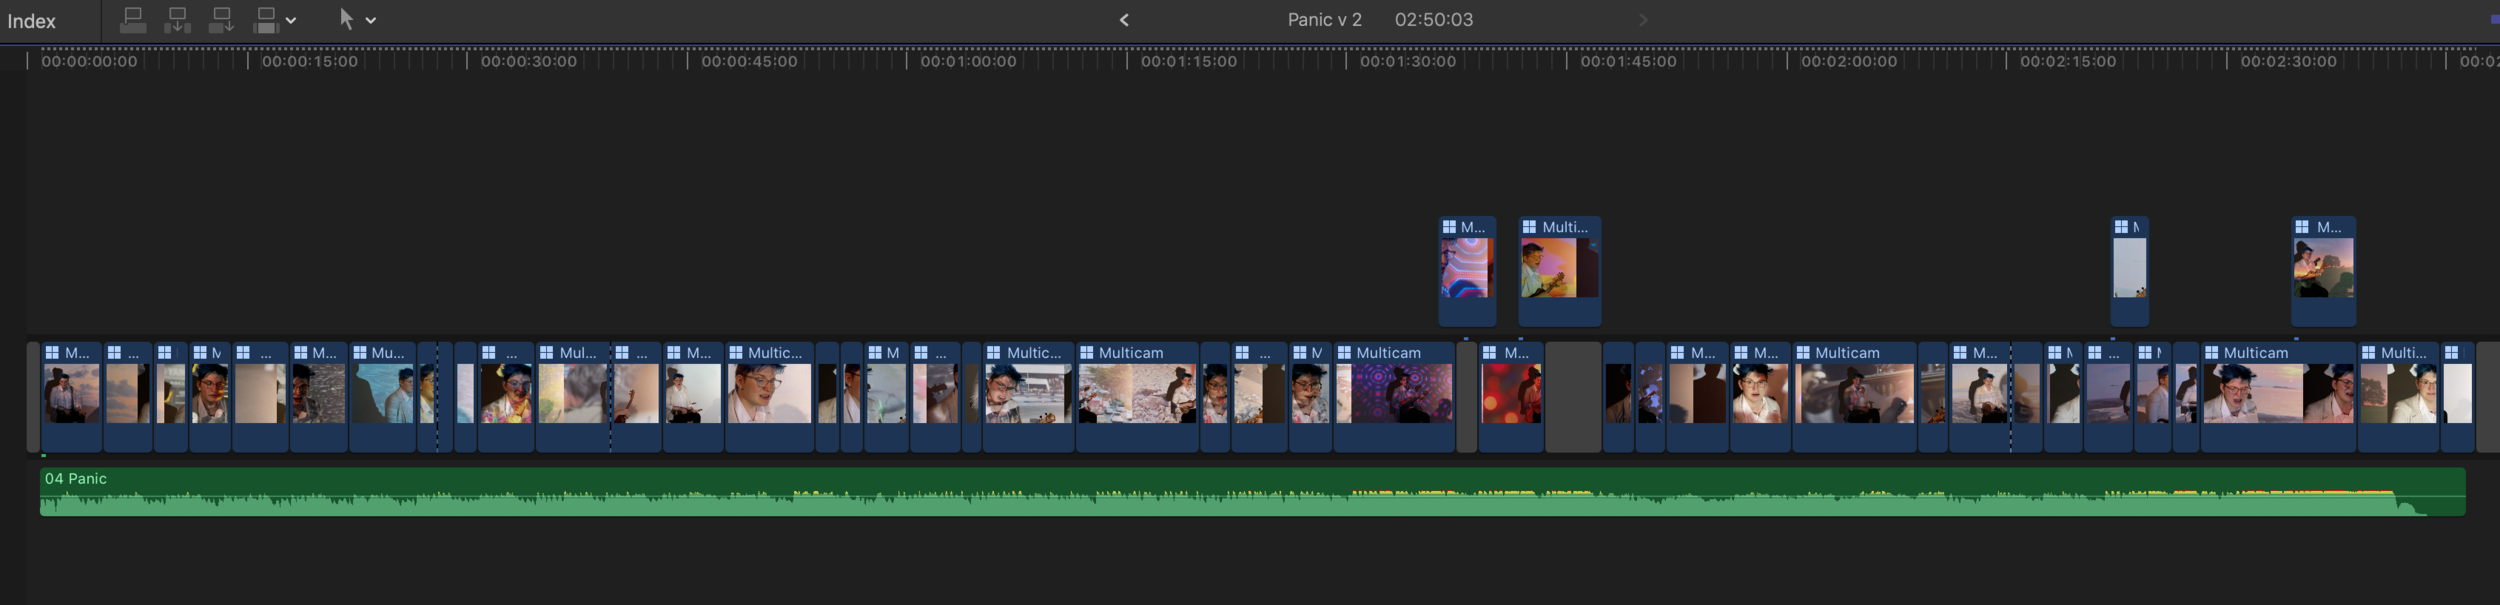 The final version of the timeline, with duplicates removed and finessing done